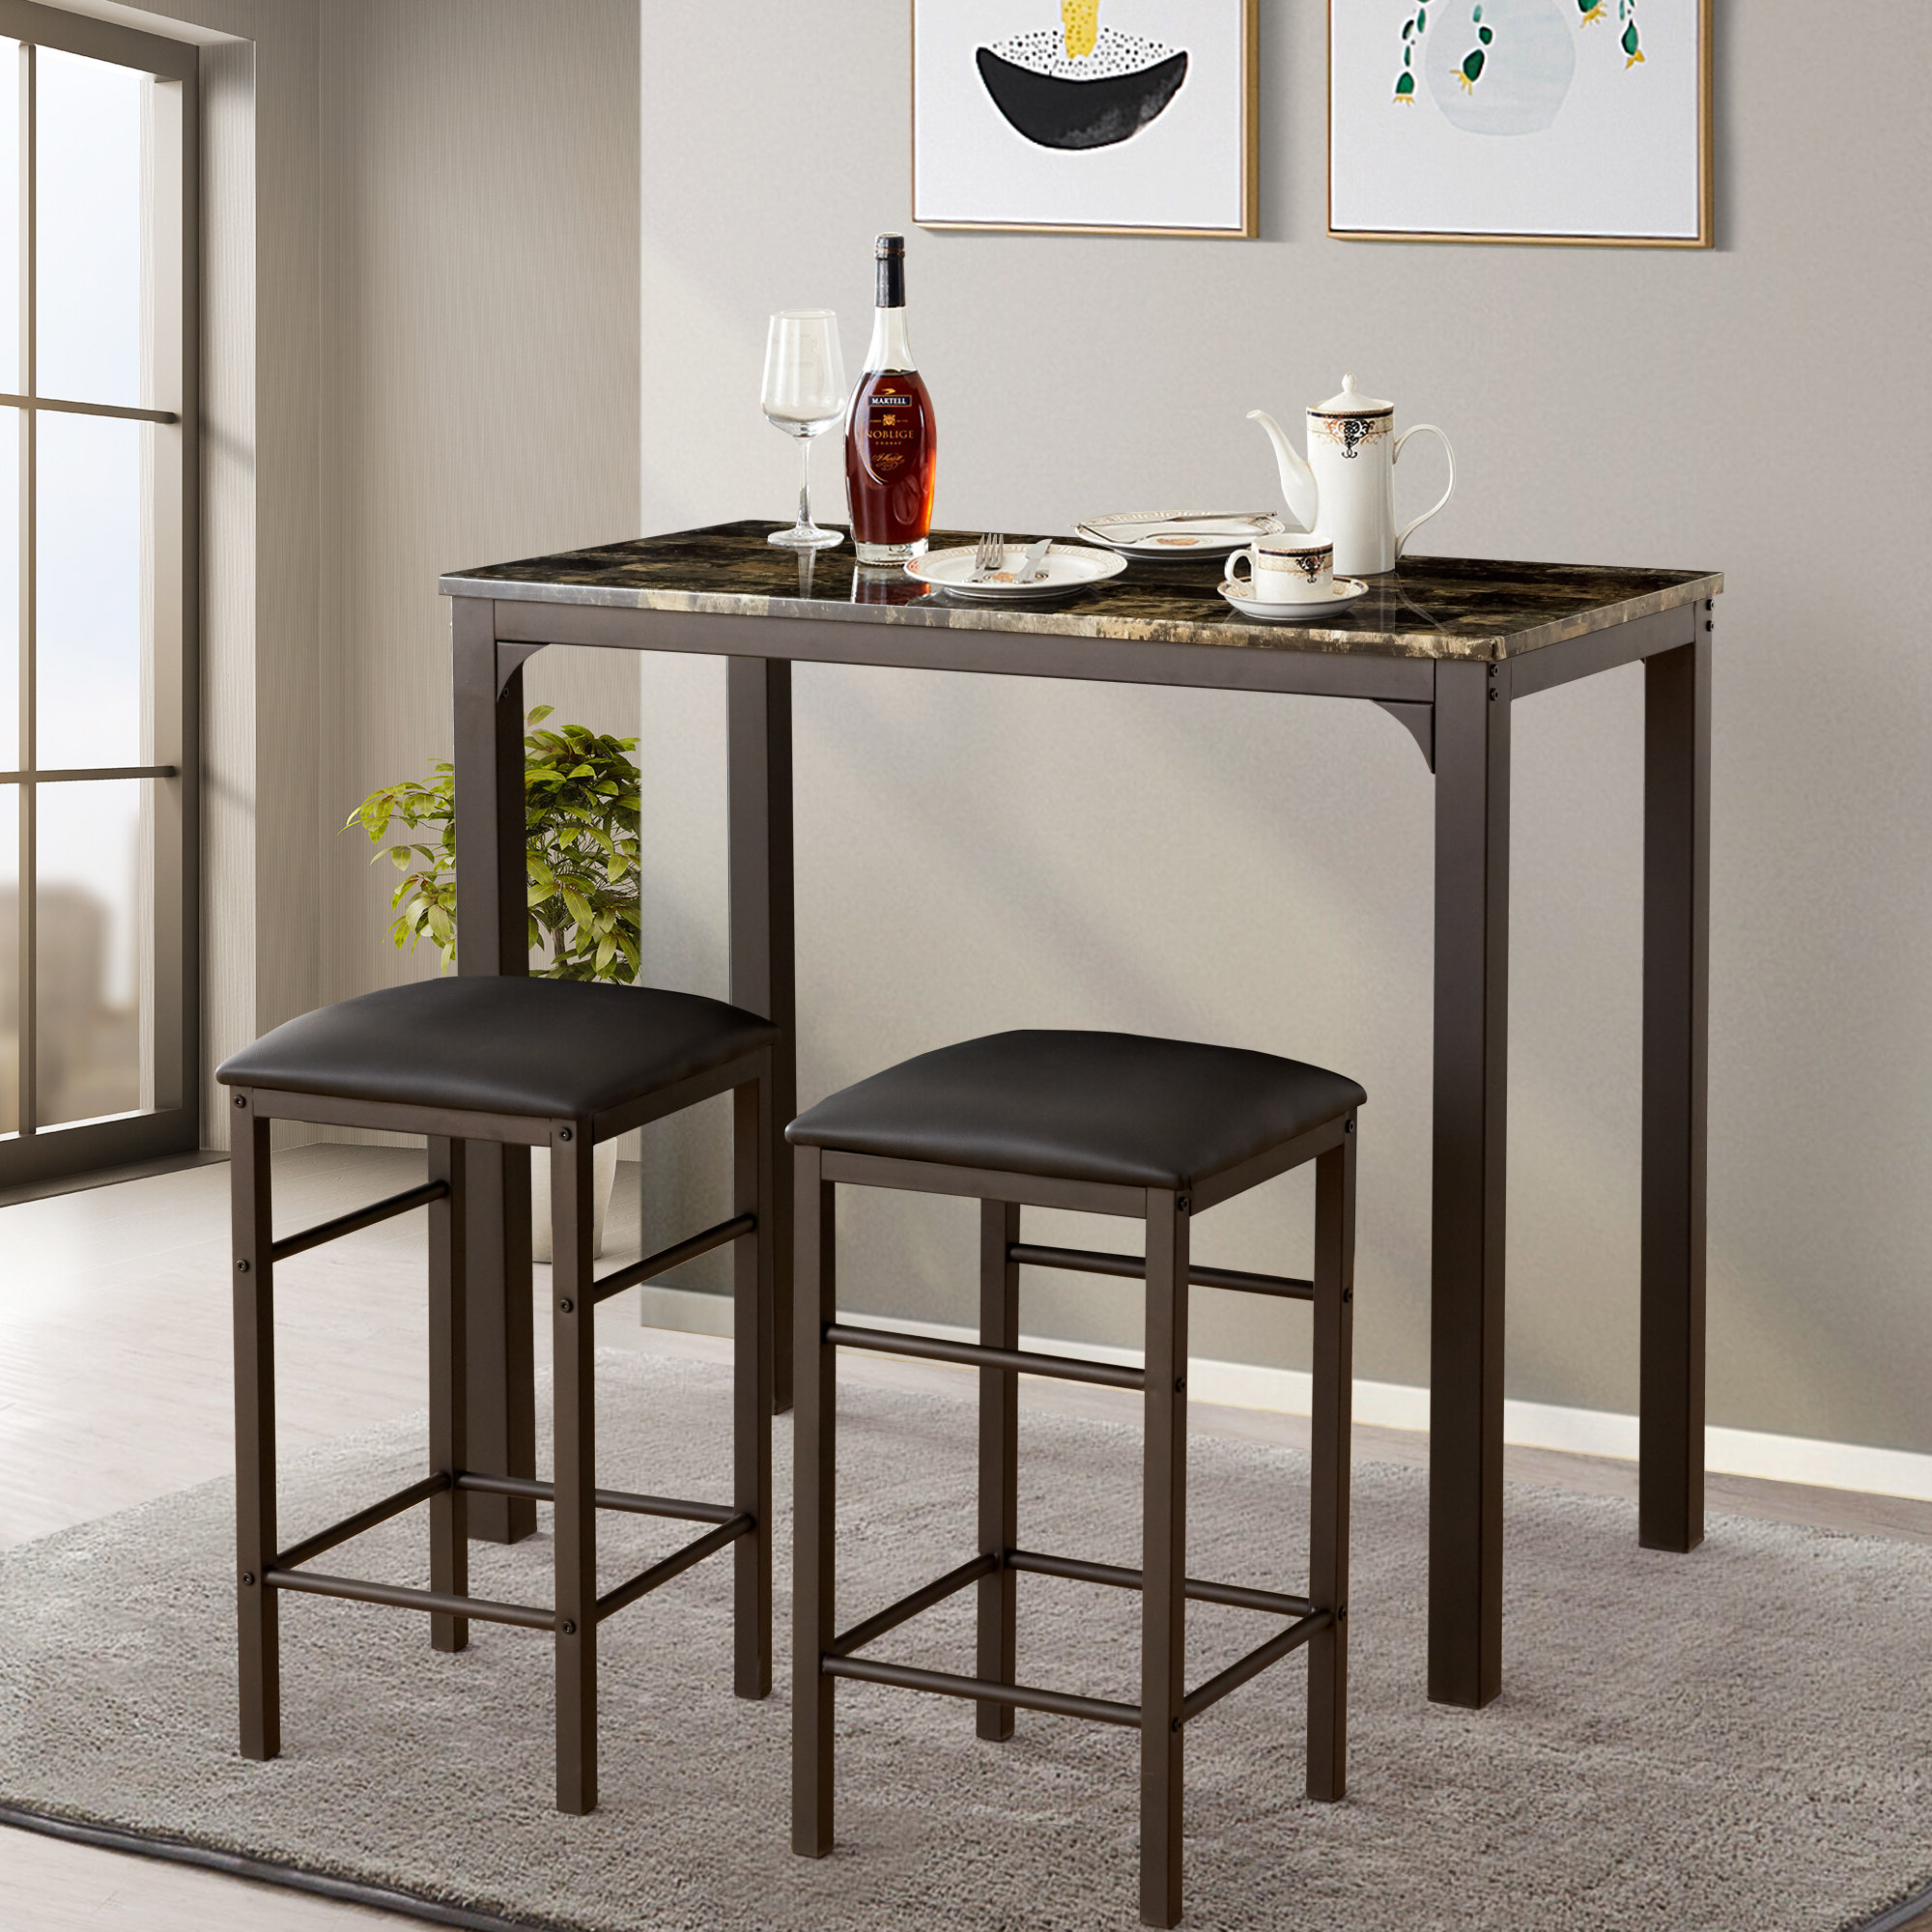 Moorehead 3 Piece Counter Height Dining Sets Within 2019 Fleur De Lis Living Tappahannock 3 Piece Counter Height Dining Set (View 13 of 25)